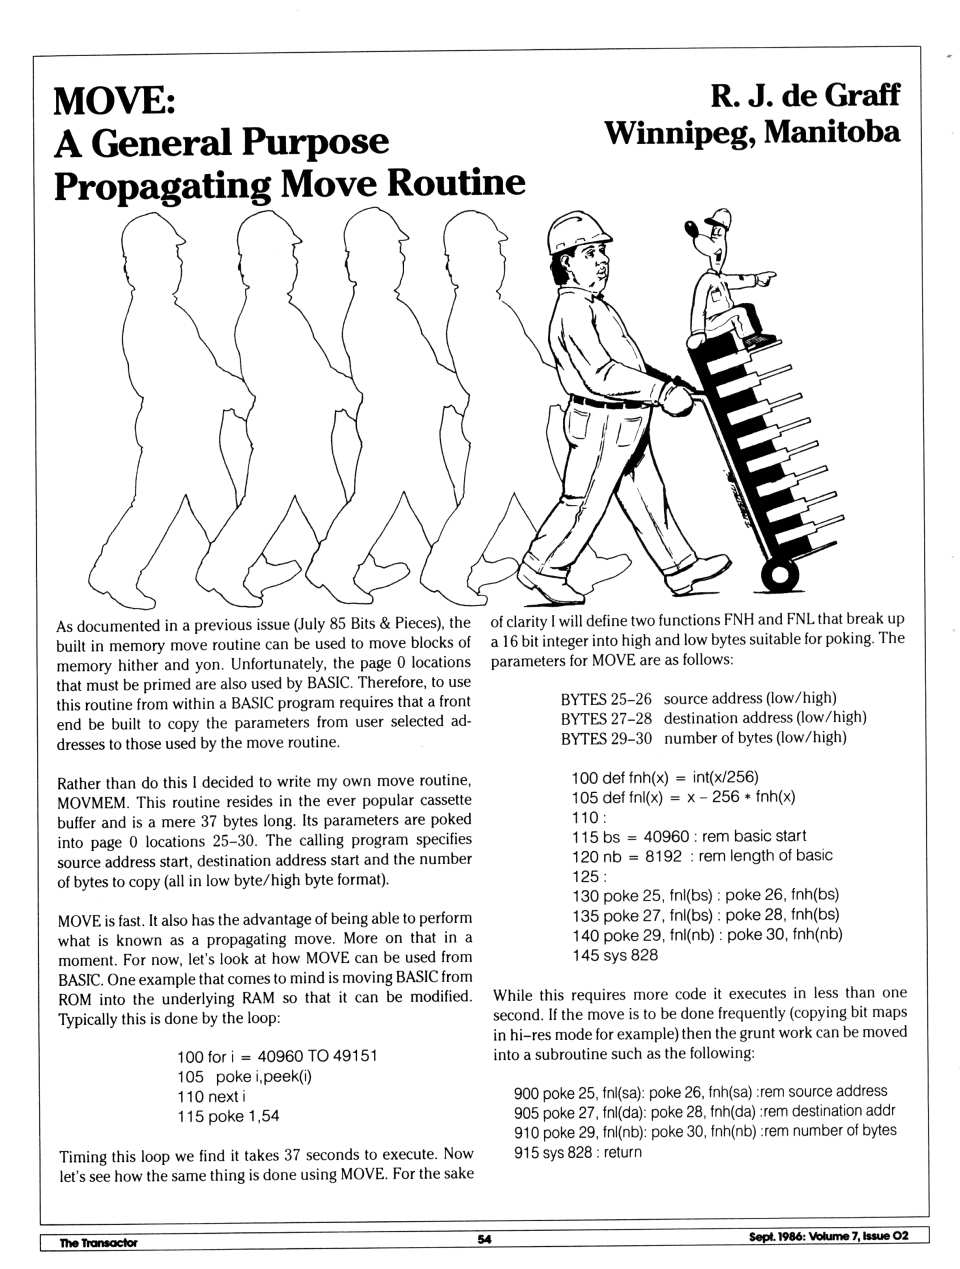 [MOVE: A General Purpose Propagating Move Routine (1/2)]